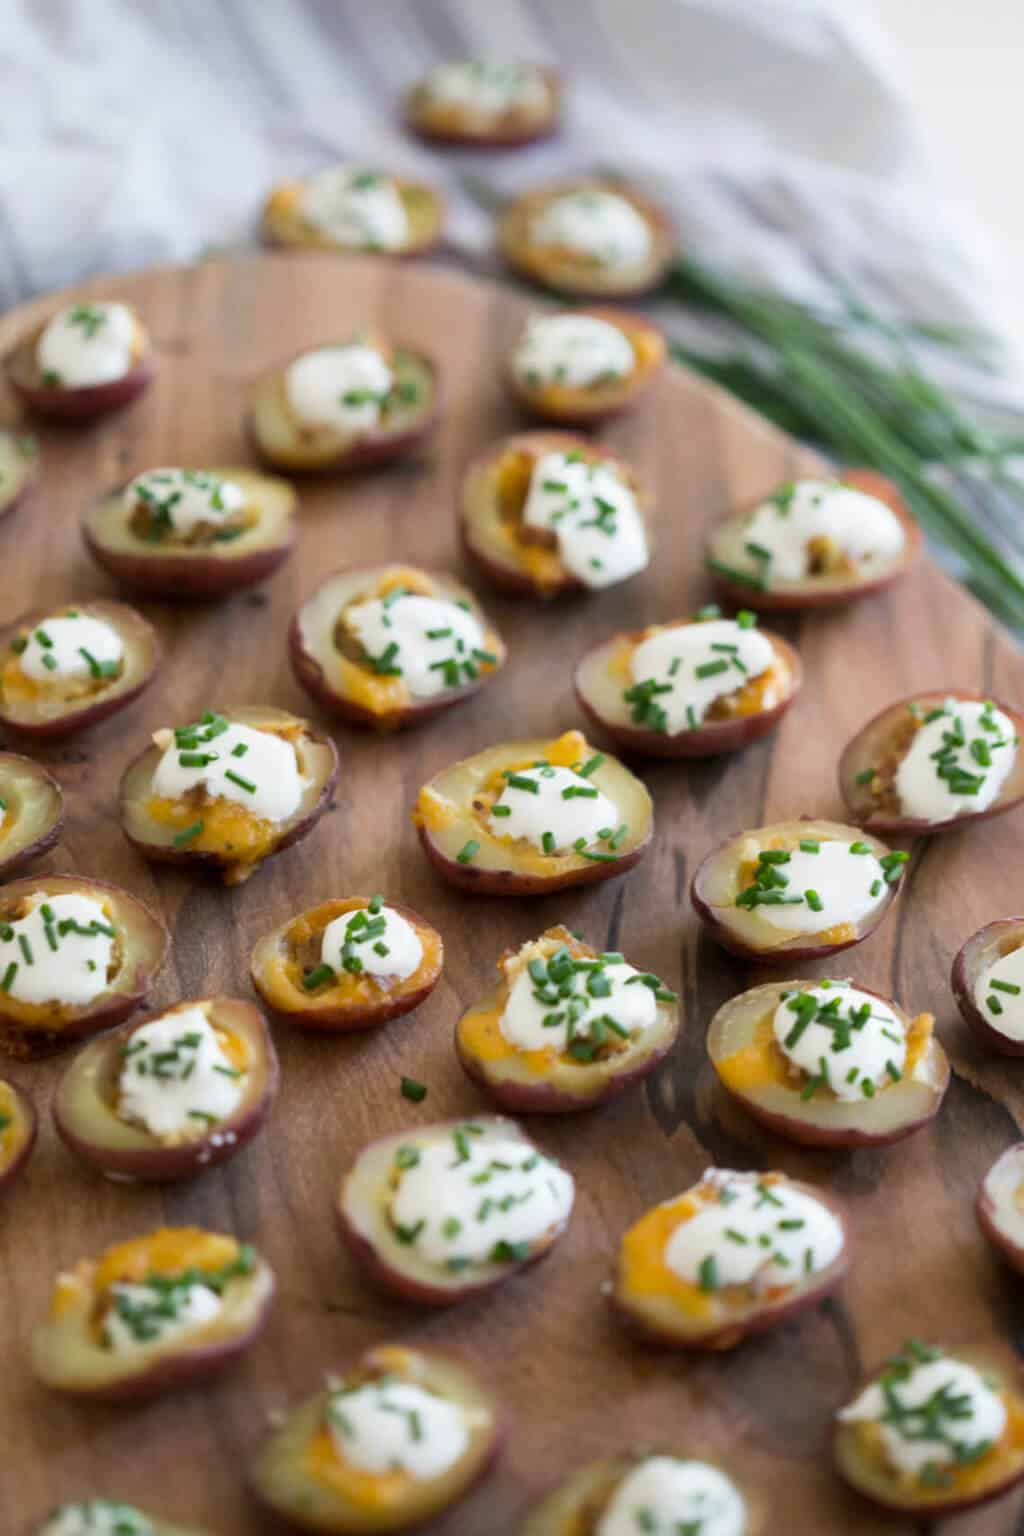 A photo of potato bites on a serving board.